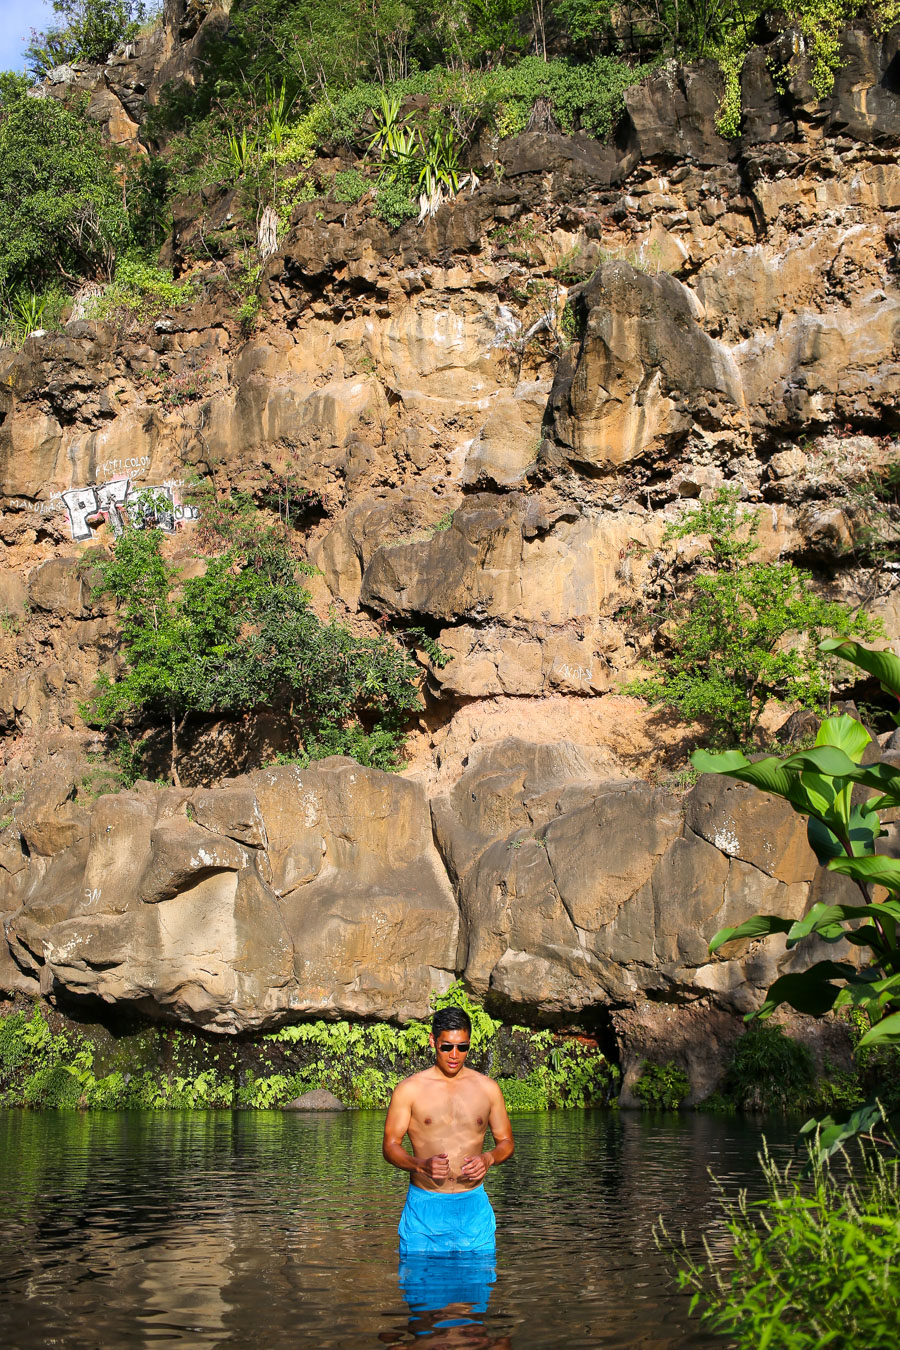 Leo Chan, Réunion, waterfall, menswear, summer look, travel guide